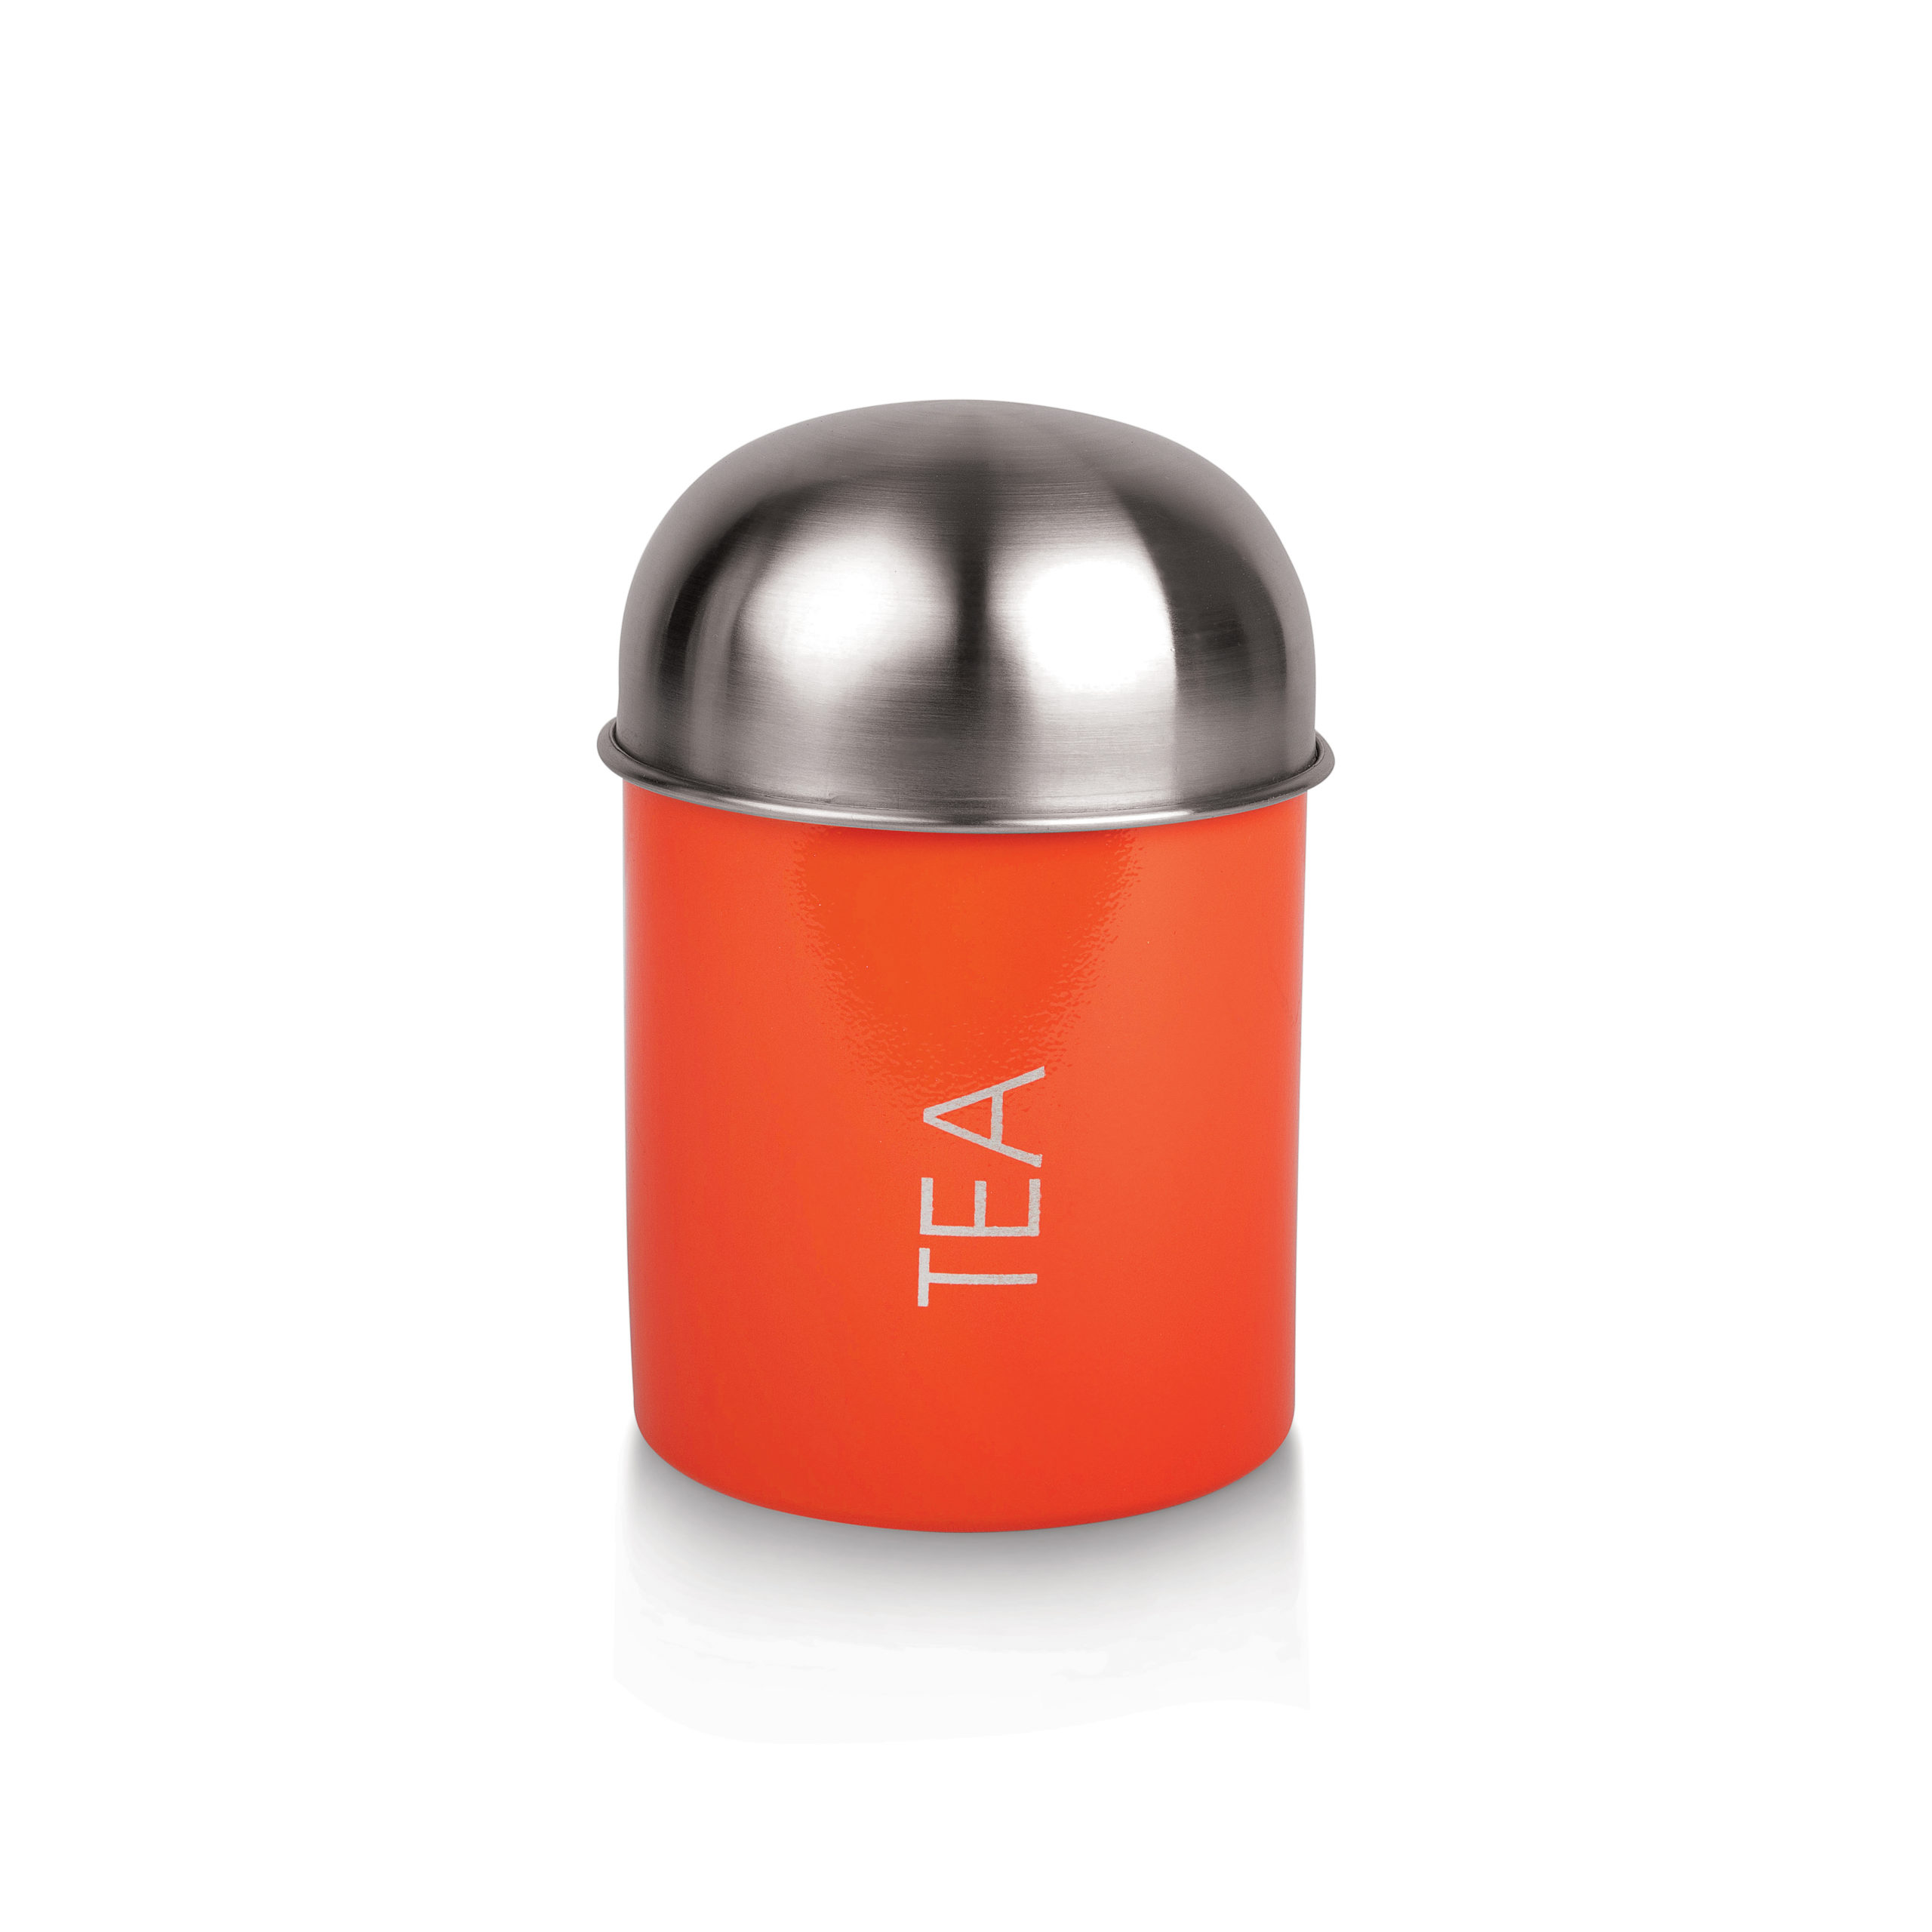 Canister Dome Lid